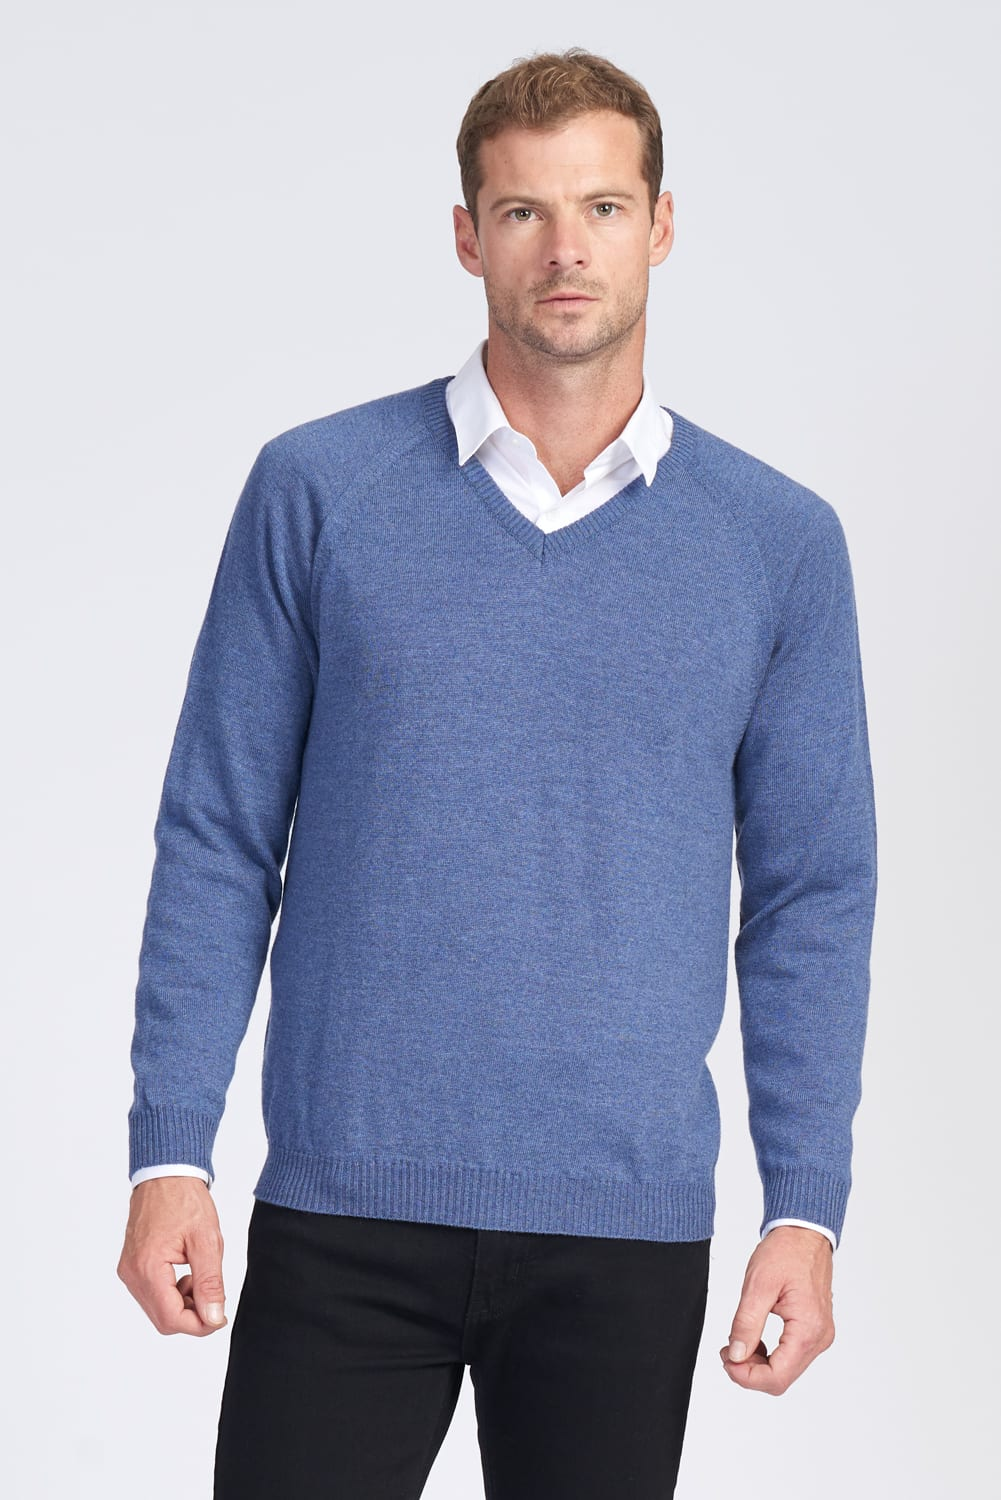 Merino Wool Mens Raglan V Neck Jumper - Royal Merino